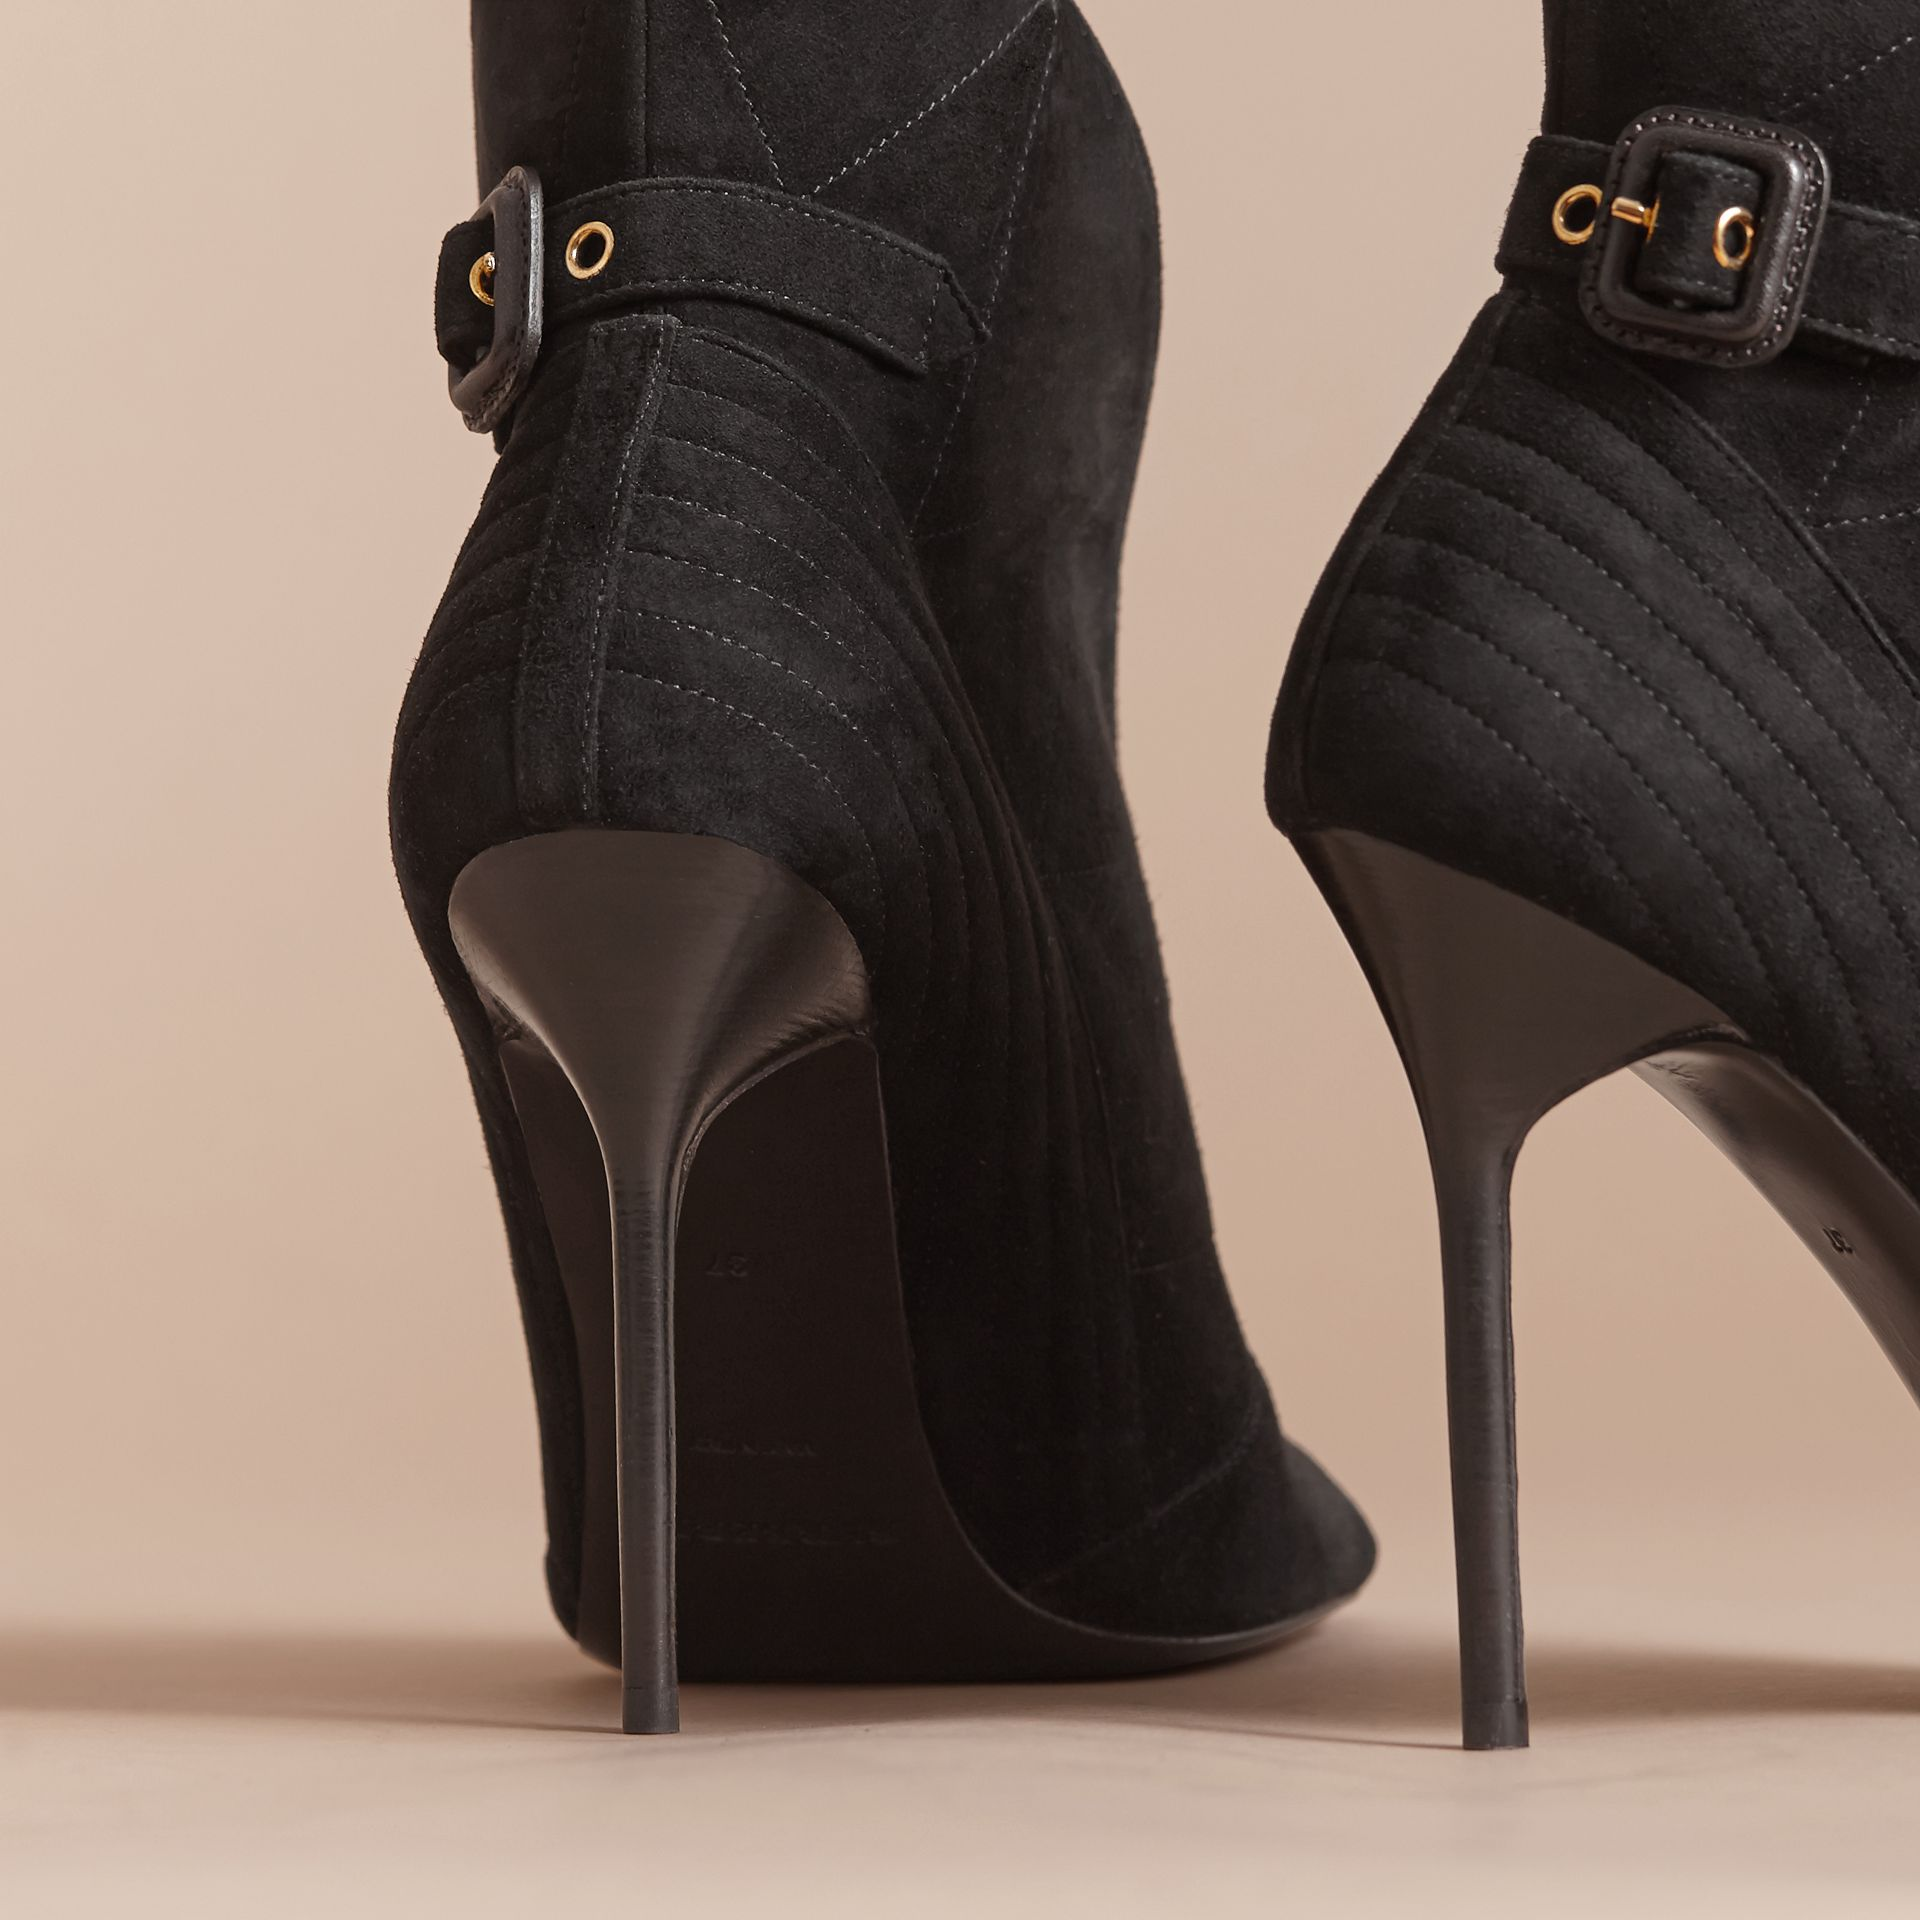 Buckle Detail Suede Peep-toe Ankle Boots in Black - Women | Burberry - gallery image 3